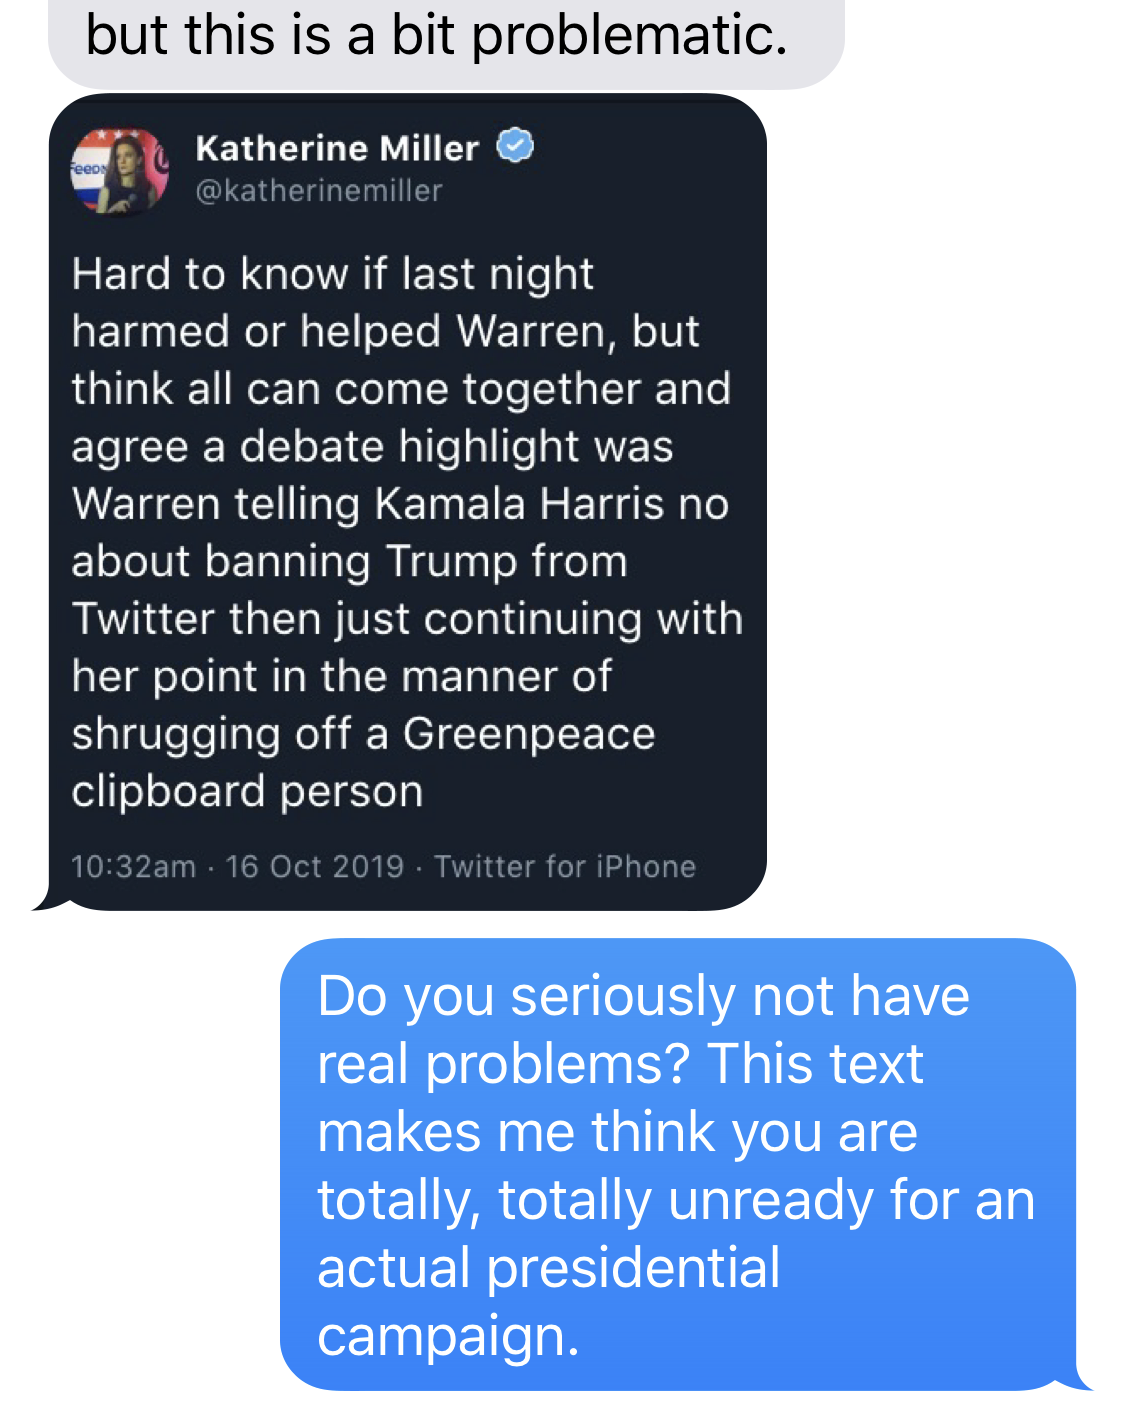 IMAGE DESCRIPTION: Deleted tweet from reporter reading, Hard to know if last night night harmed or helped Warren, but think all can come together and agree a debate highlight was Warren telling Kamala Harris no about banning Trump from Twitter then just continuing with her point in the manner of shrugging off a Greenpeace clipboard person   BEN SMITH: Do you seriously not have real problems? This text makes me think you are totally, totally unready for an actual presidential campaign